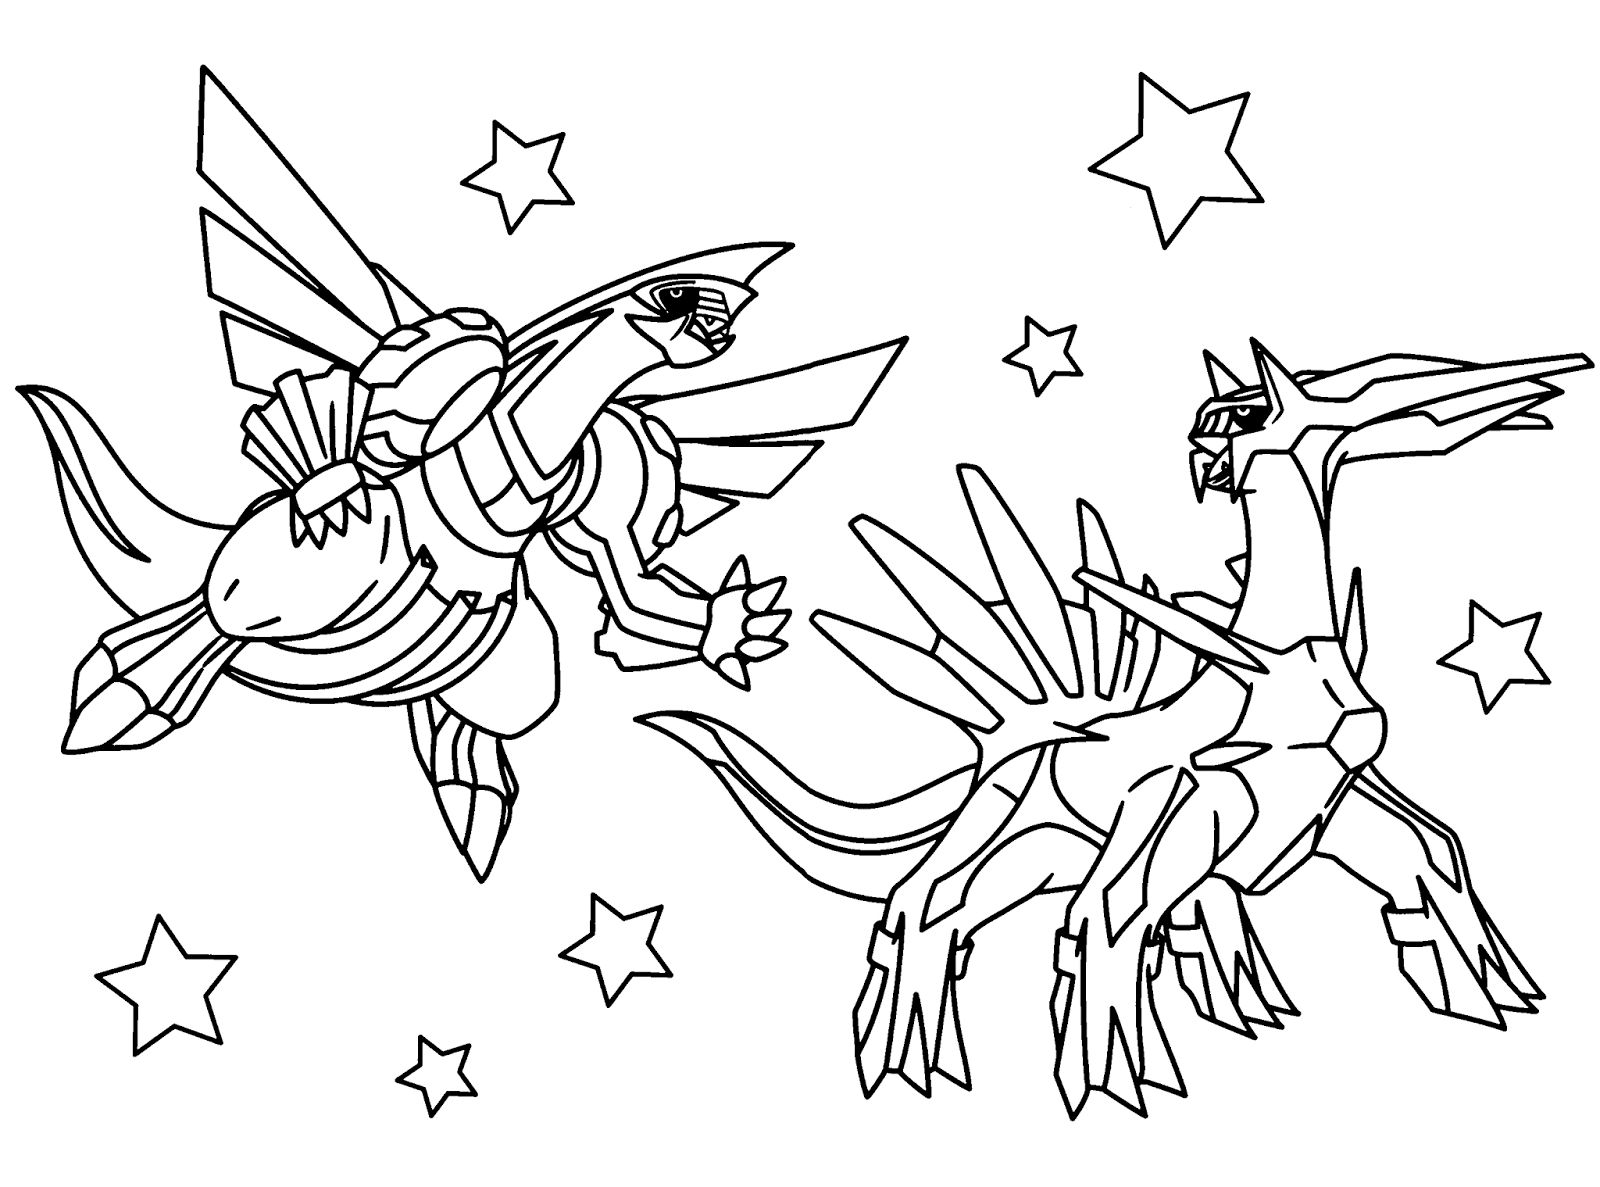 Legendary Pokemon Coloring Pages Palkia Download Pokemon Coloring Pages Shark Coloring Pages Cartoon Coloring Pages